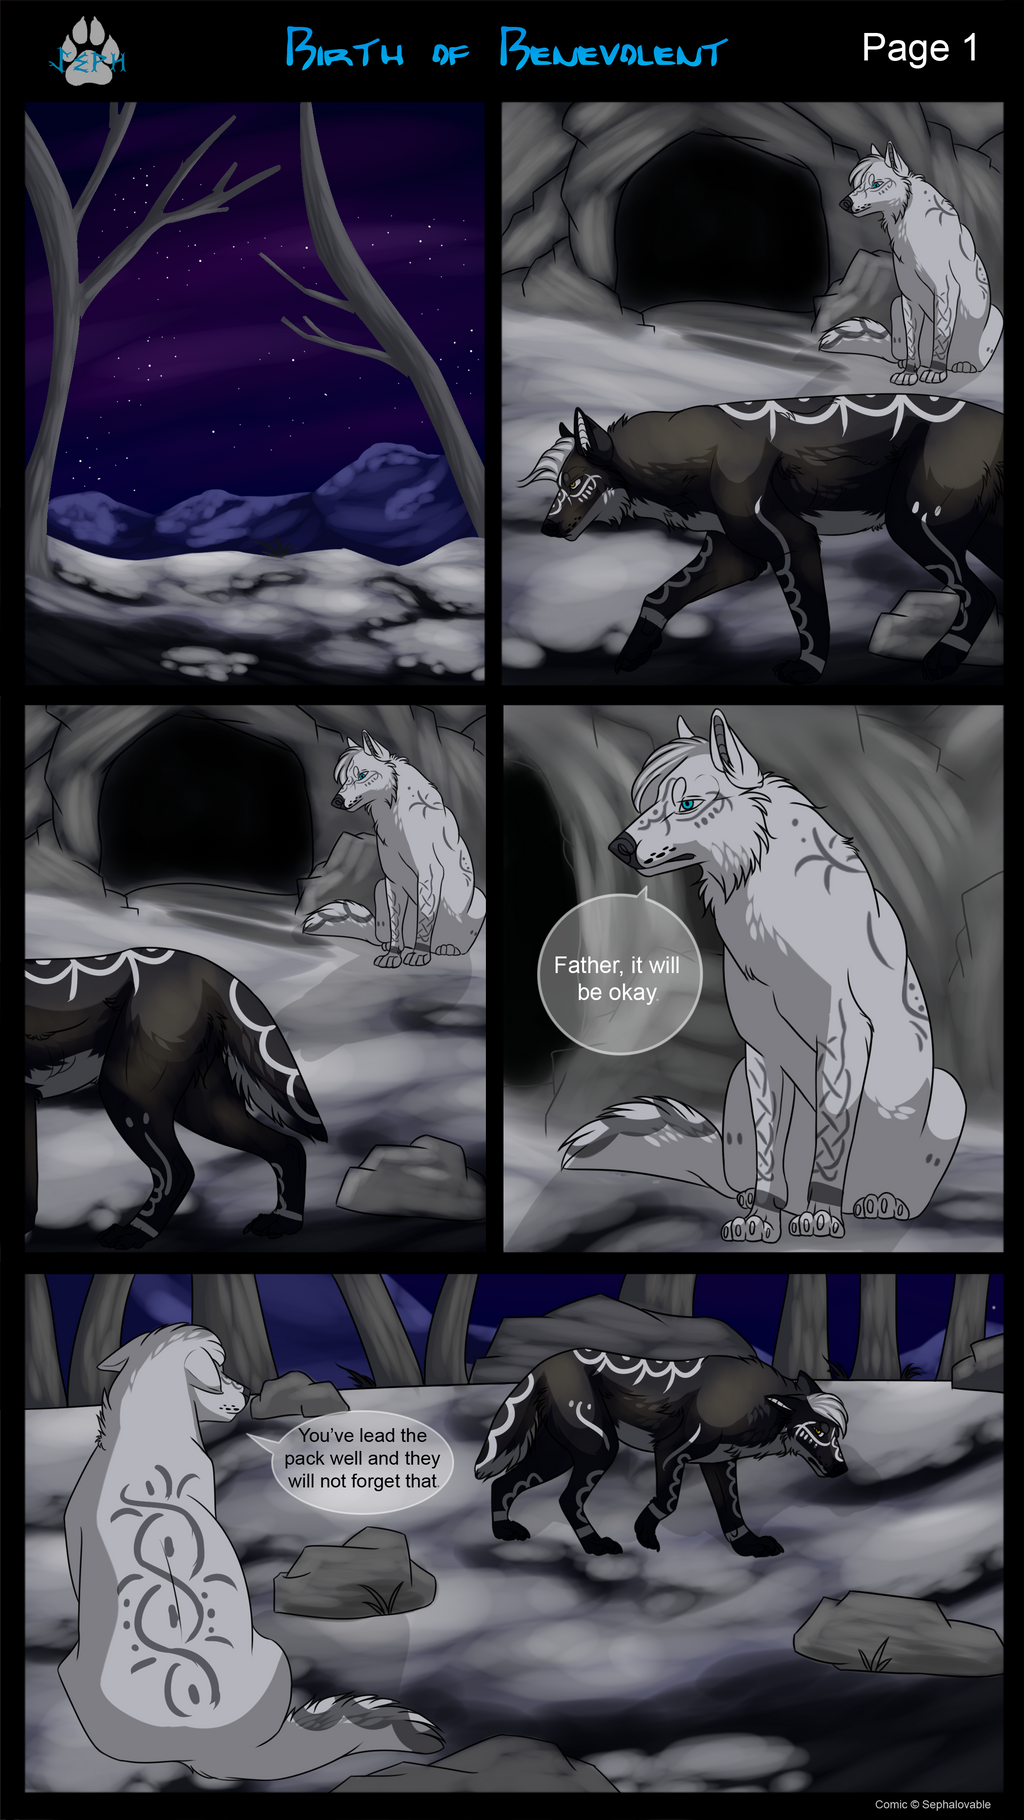 Birth of Benevolent Page 1 by MoscoMoon